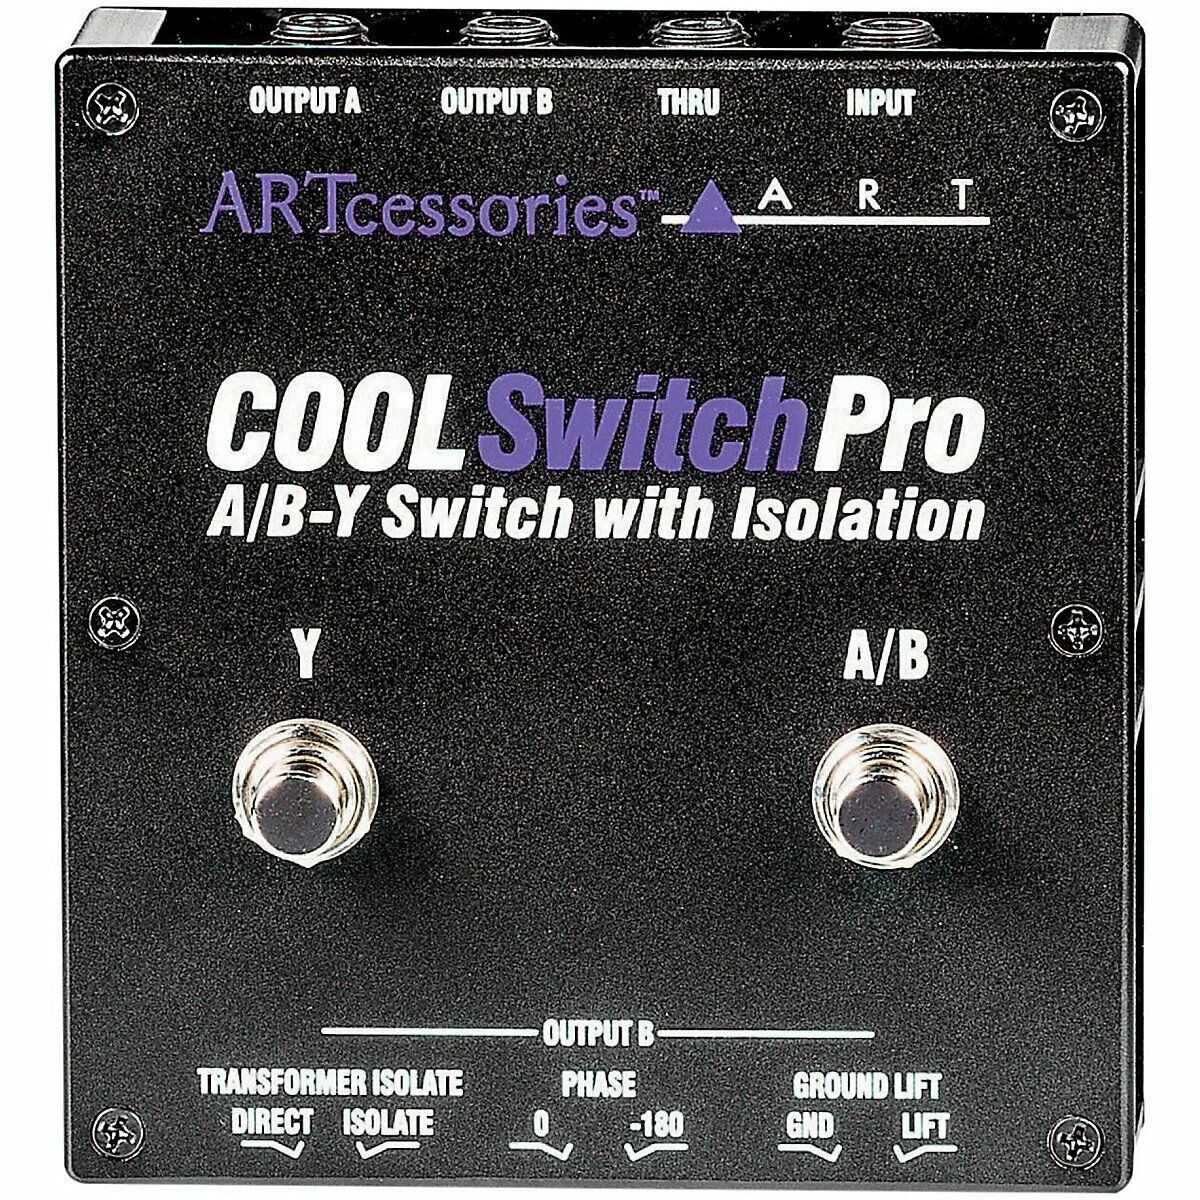 ART CoolSwitch Pro A B-Y Switch with Isolation NEW  Free 2-Day Delivery